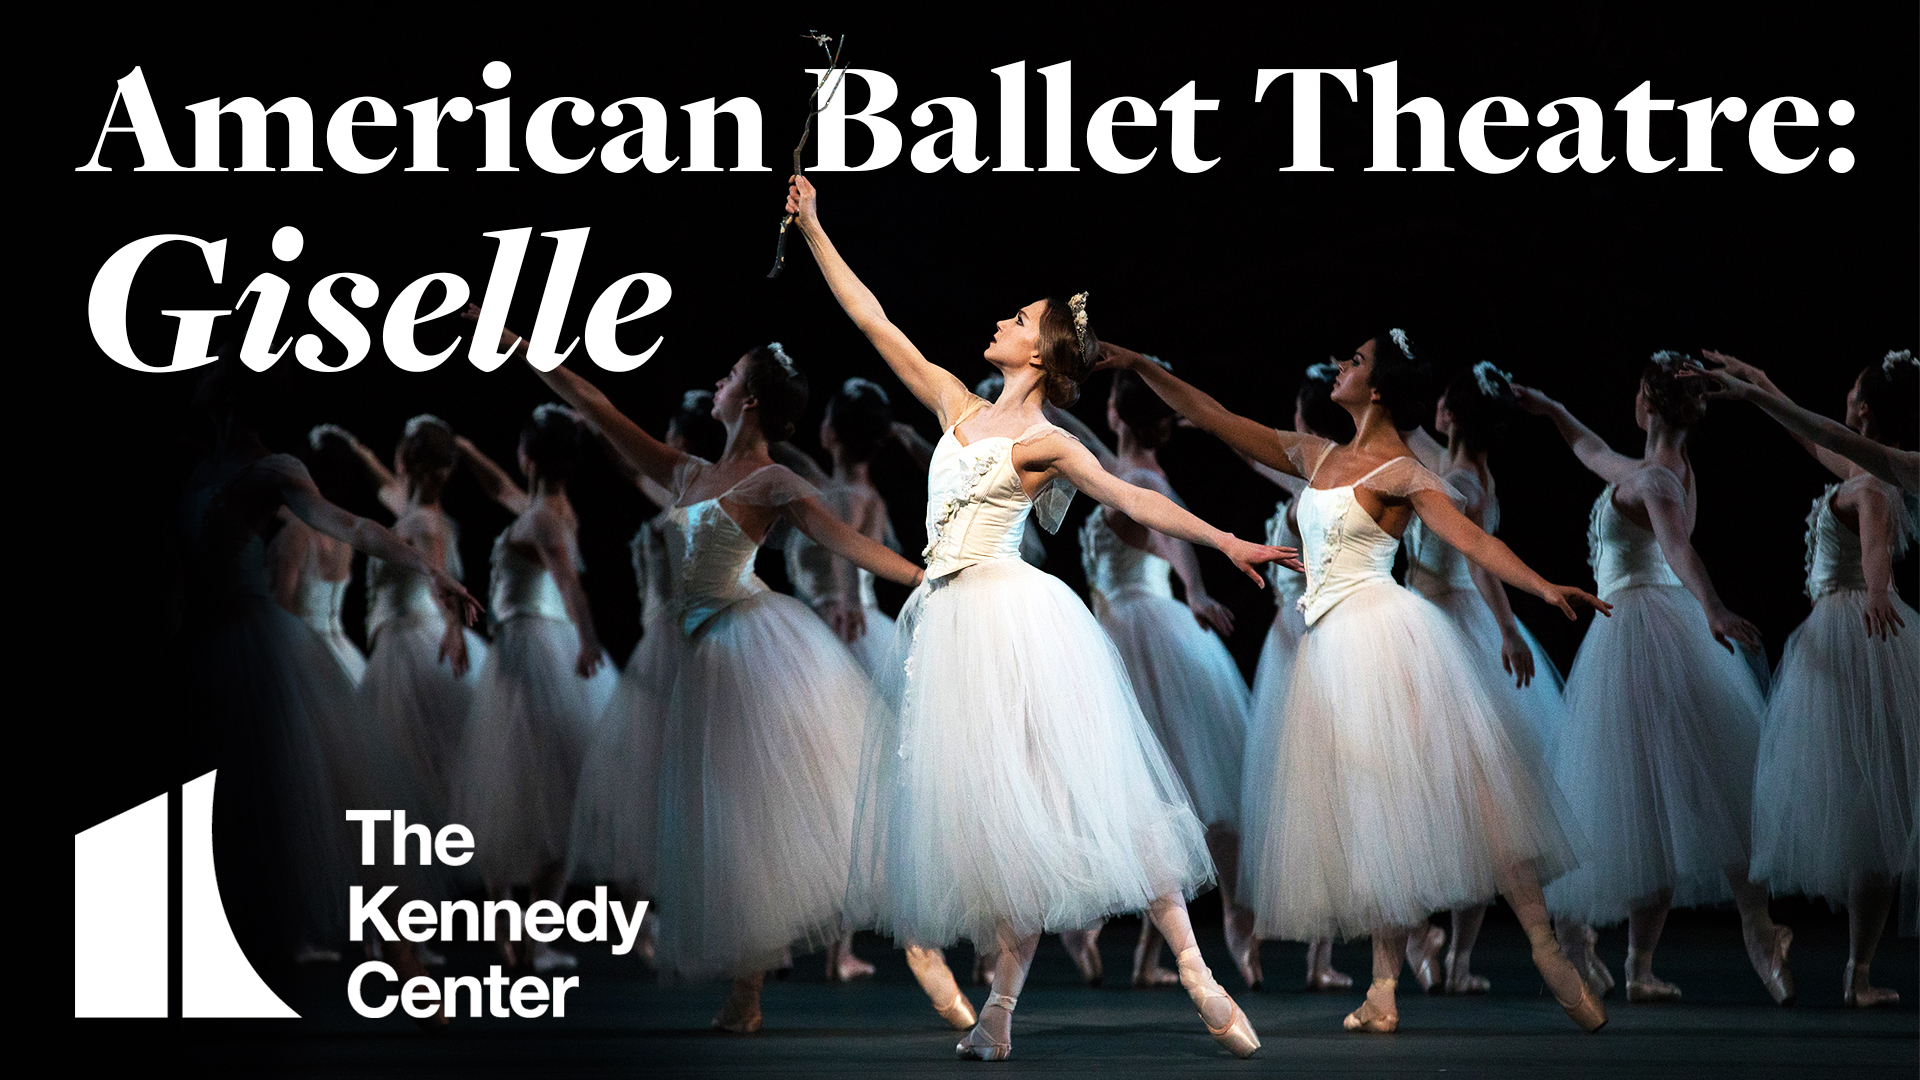 American Ballet Theatre: Giselle | Feb. 11-16 | The Kennedy Center